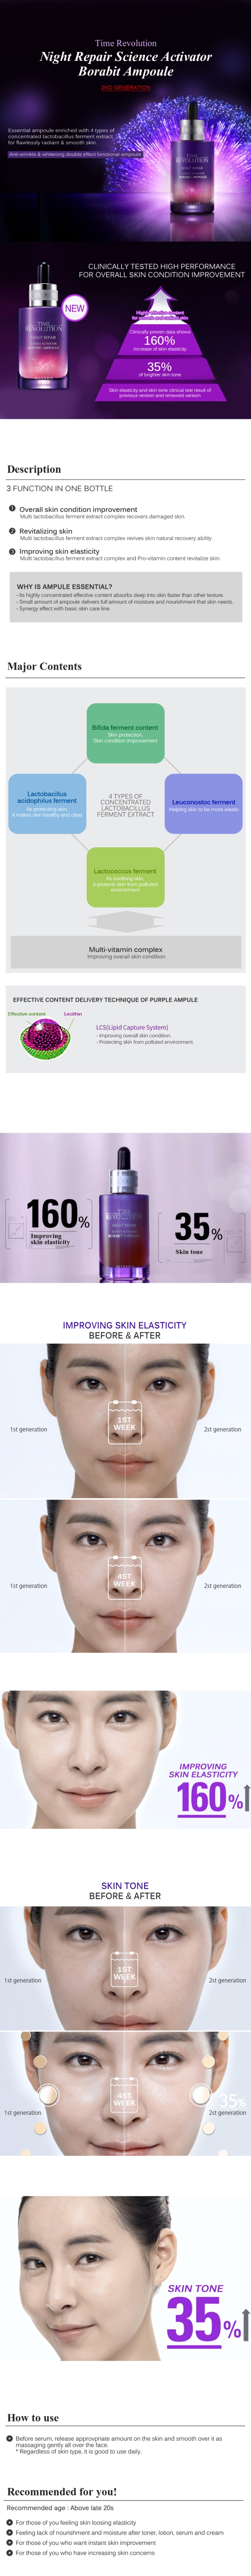 Credit: BeautynetKorea website